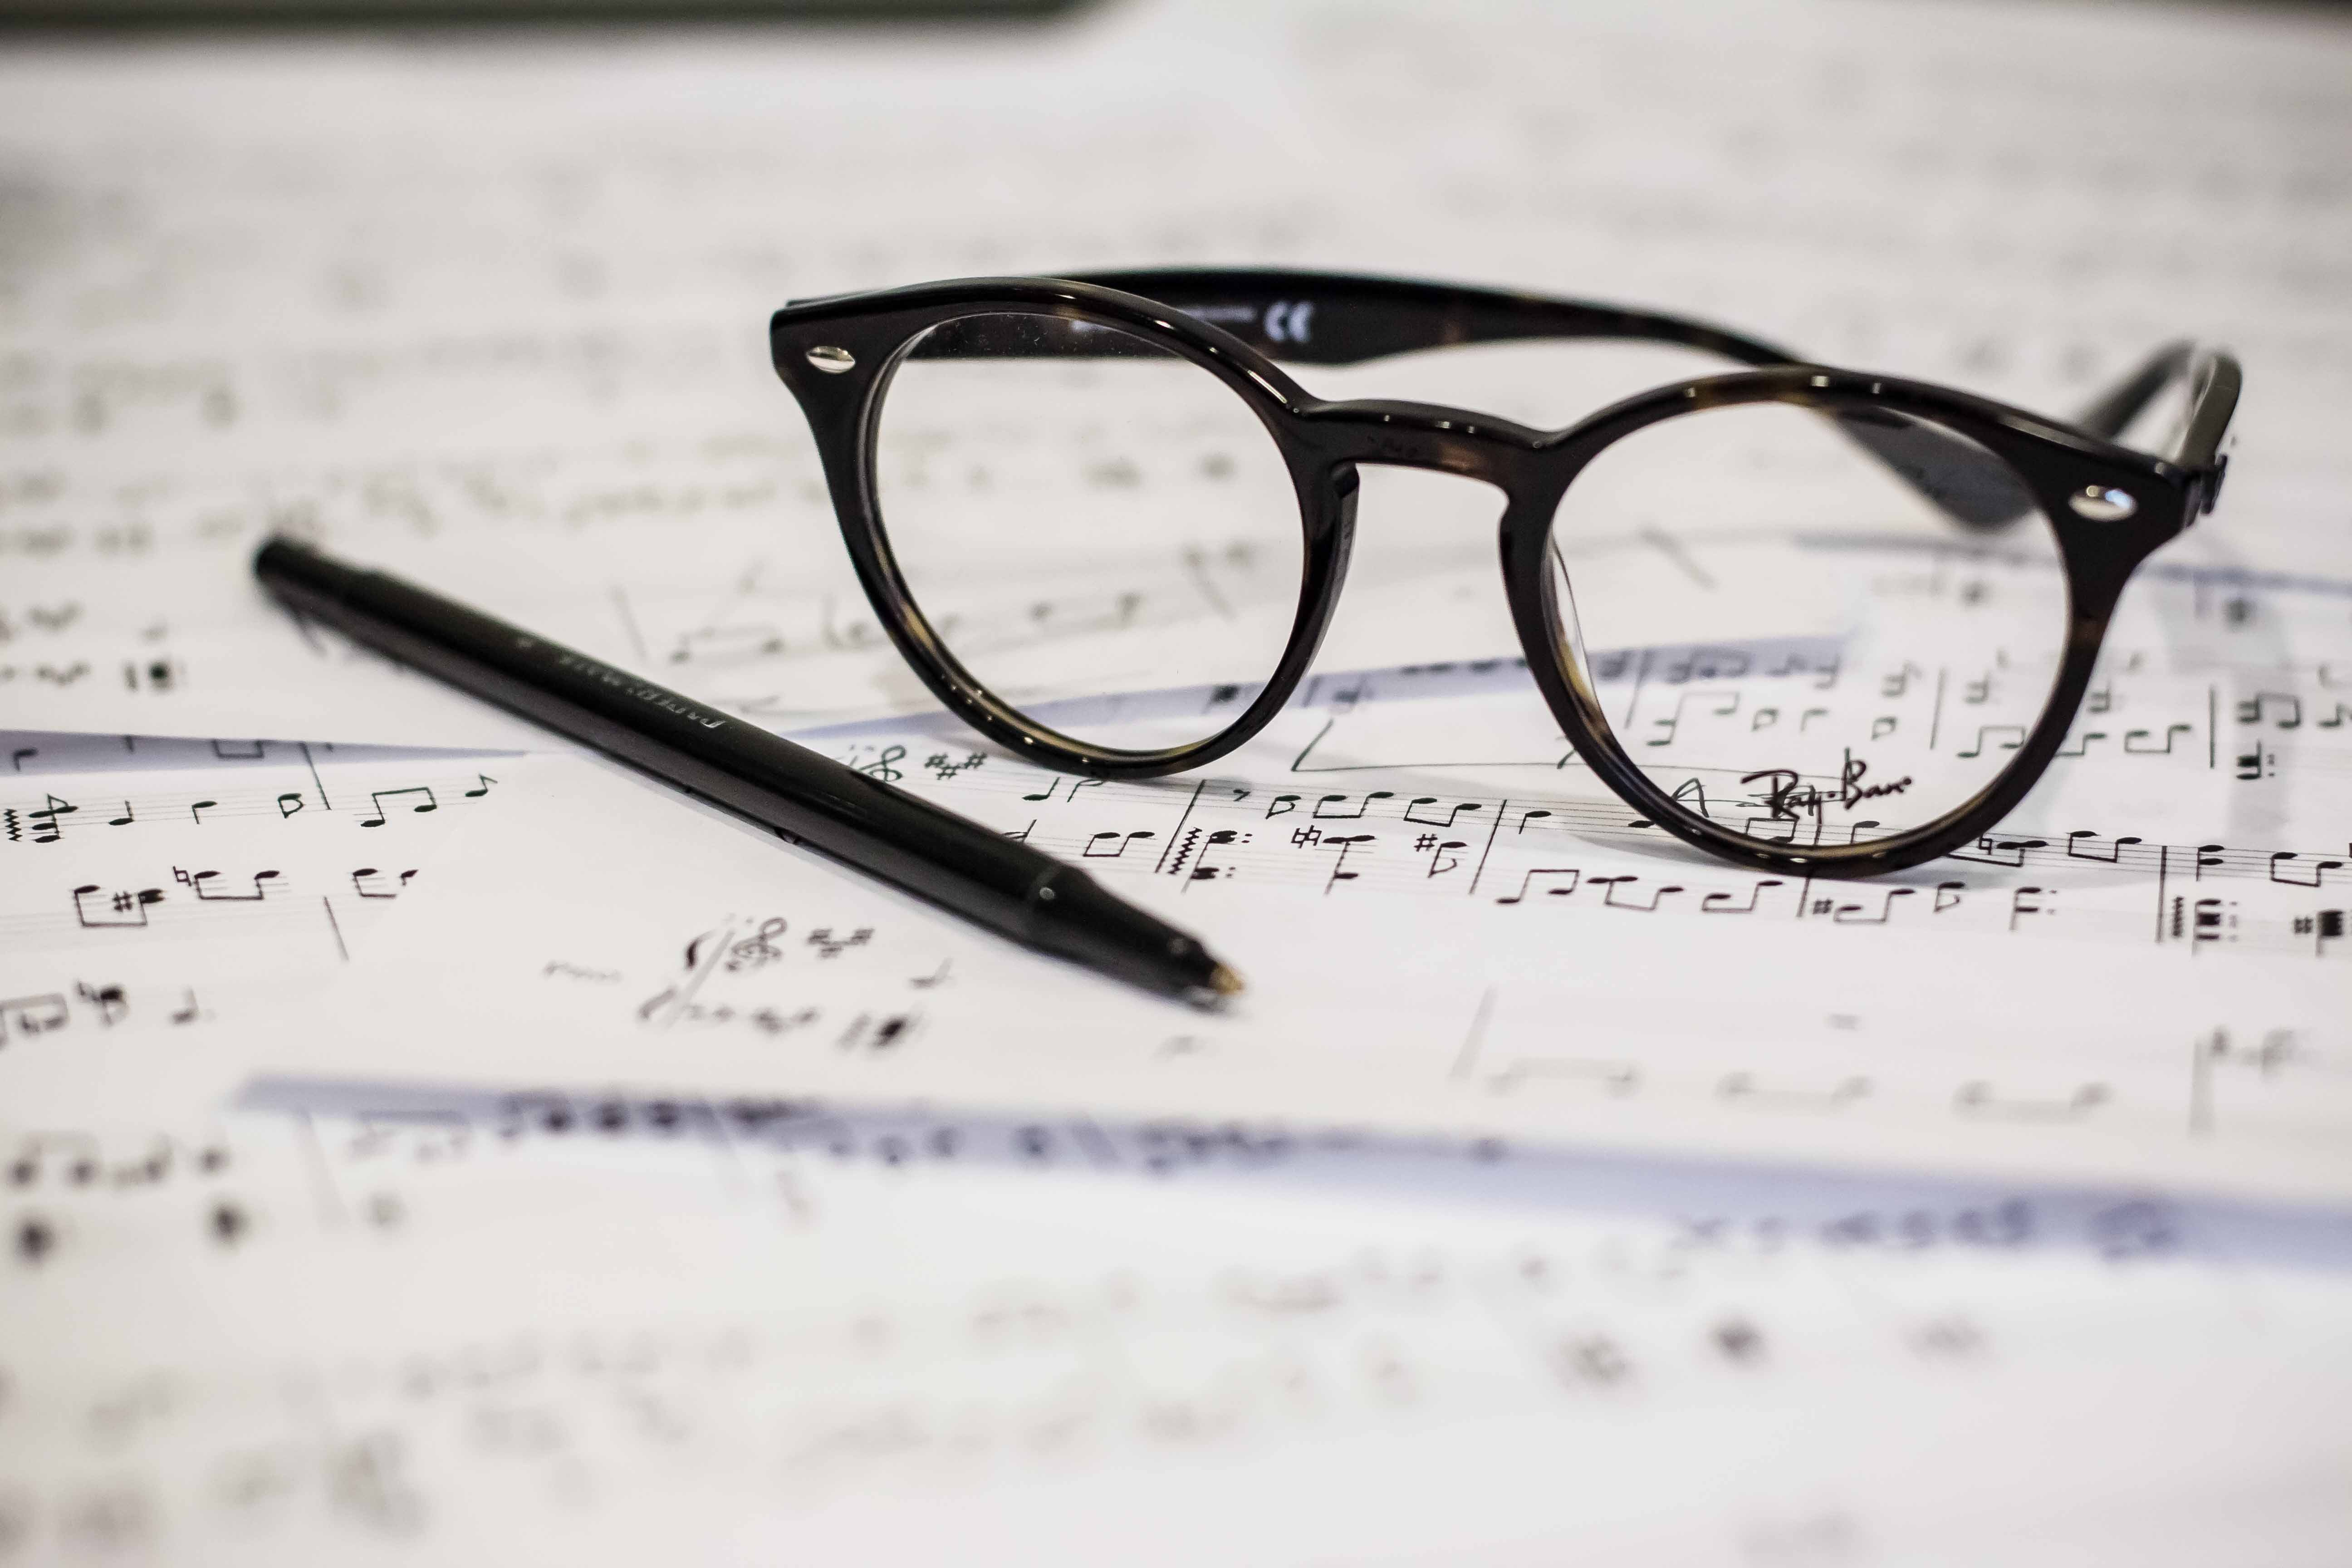 A pen and a pair of glasses on music sheets